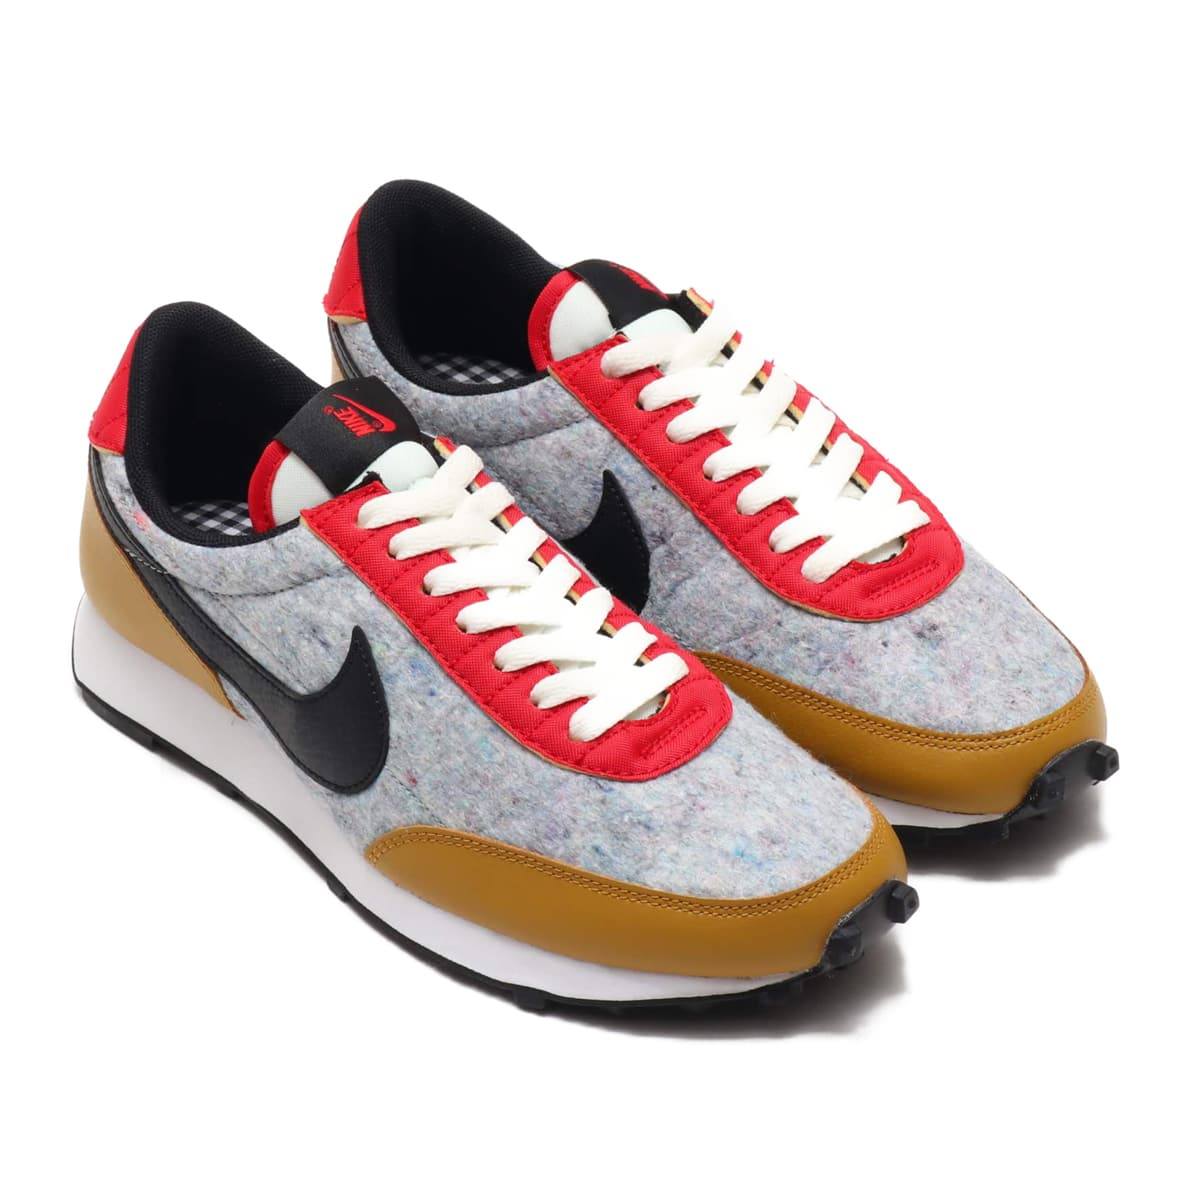 NIKE W DBREAK QS GOLD SUEDE/BLACK-UNIVERSITY RED-SAIL 19HO-S_photo_large